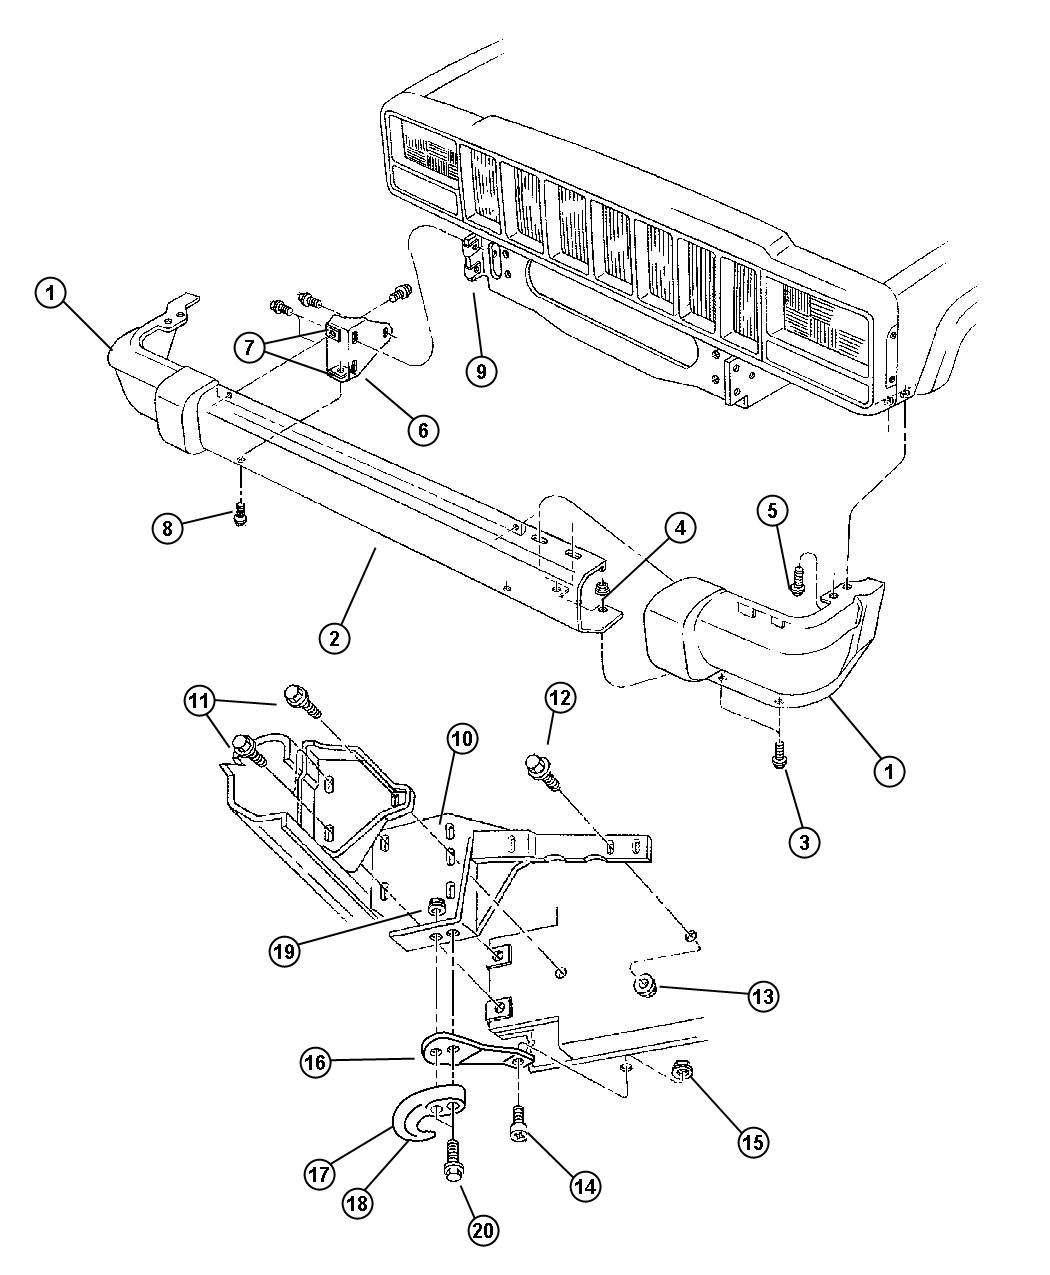 Jeep Cherokee Screw Hex Head M6x1x20 Cable Routing